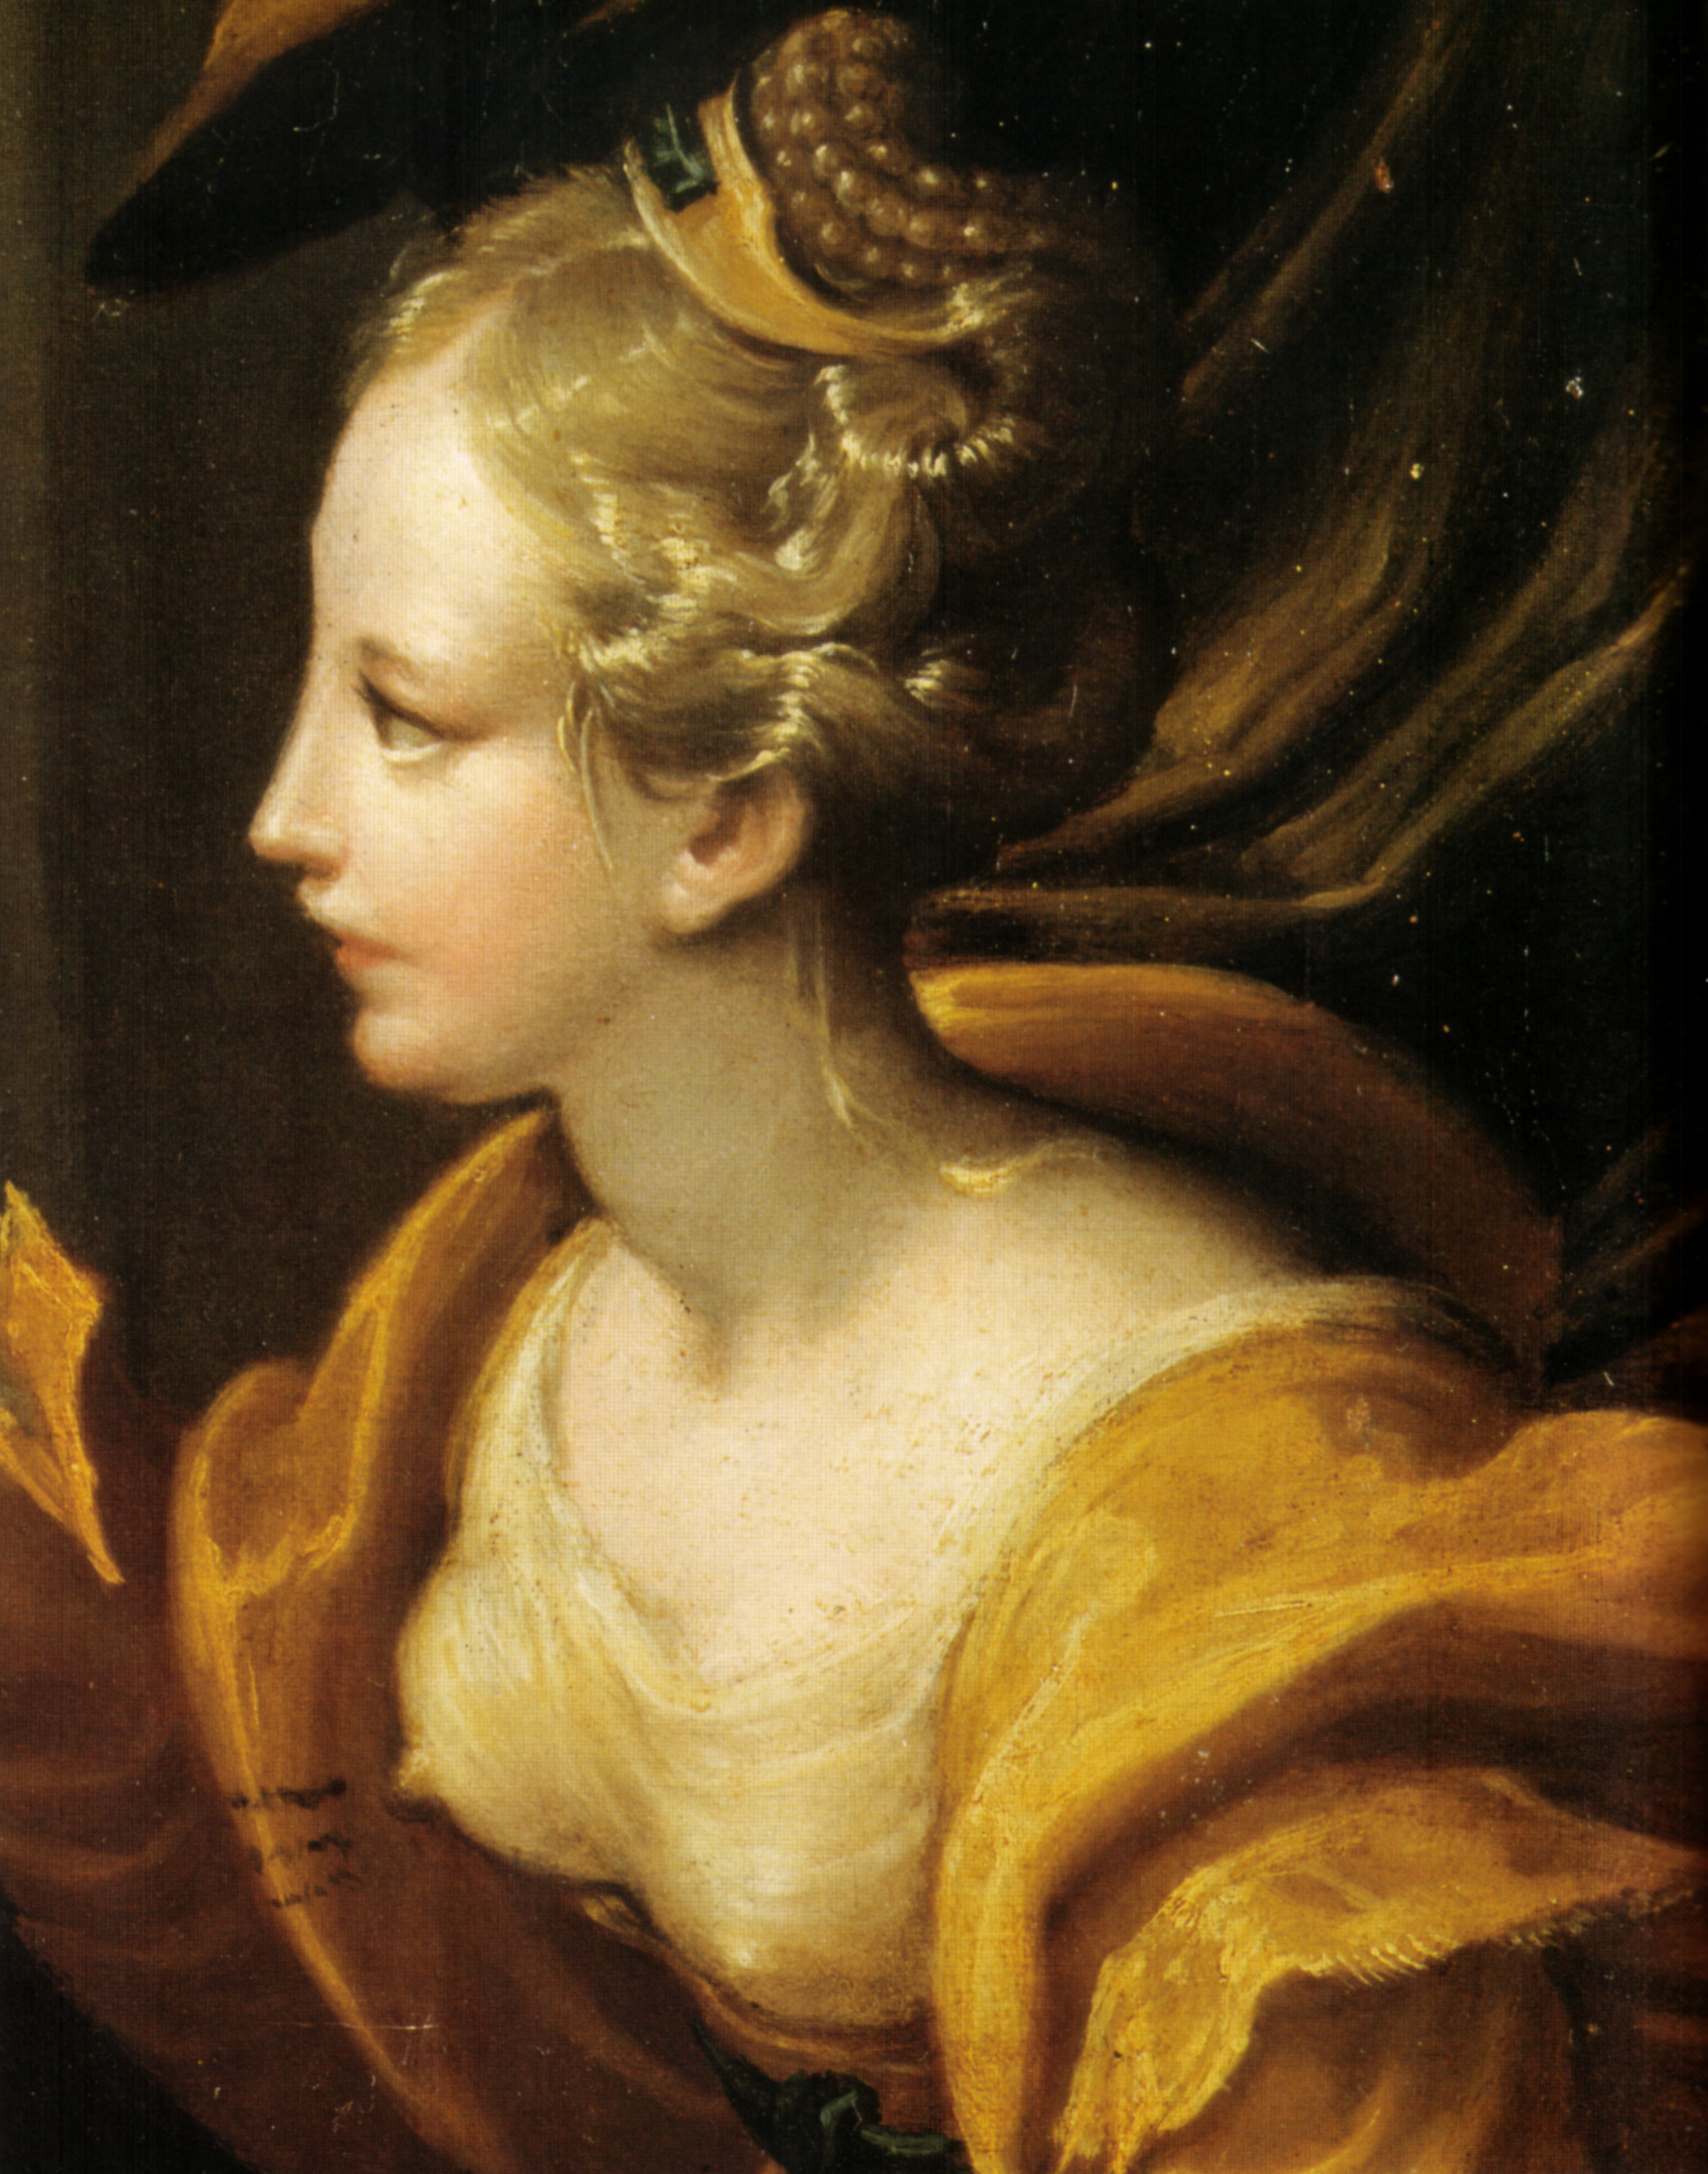 mannerism in florence and rome essay The high renaissance: rome and florence vs venice updated on october 1, 2009  mannerism is revealed in this painting in the imbalanced compositions, and unusual .